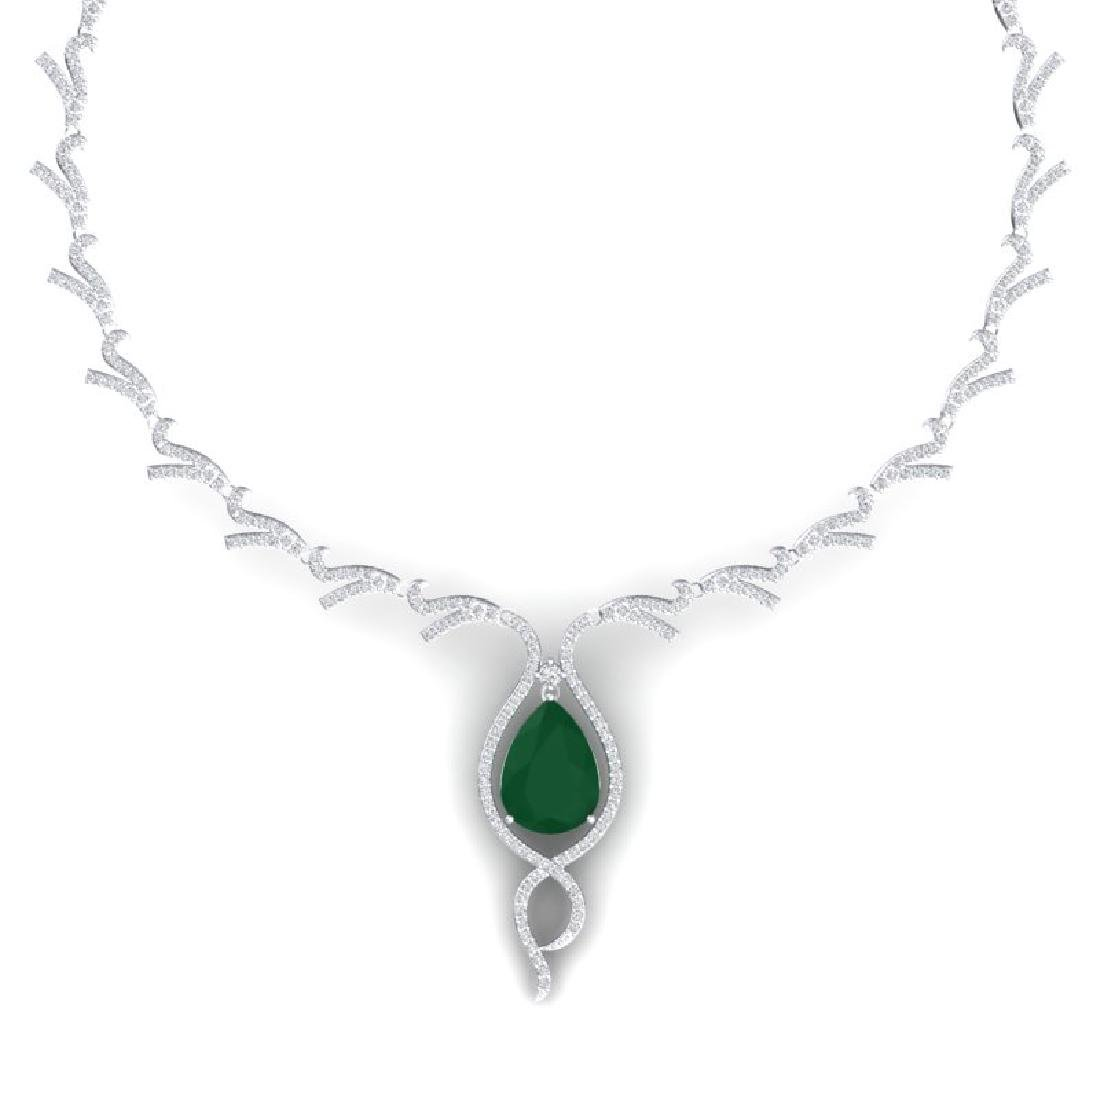 23.43 CTW Royalty Emerald & VS Diamond Necklace 18K